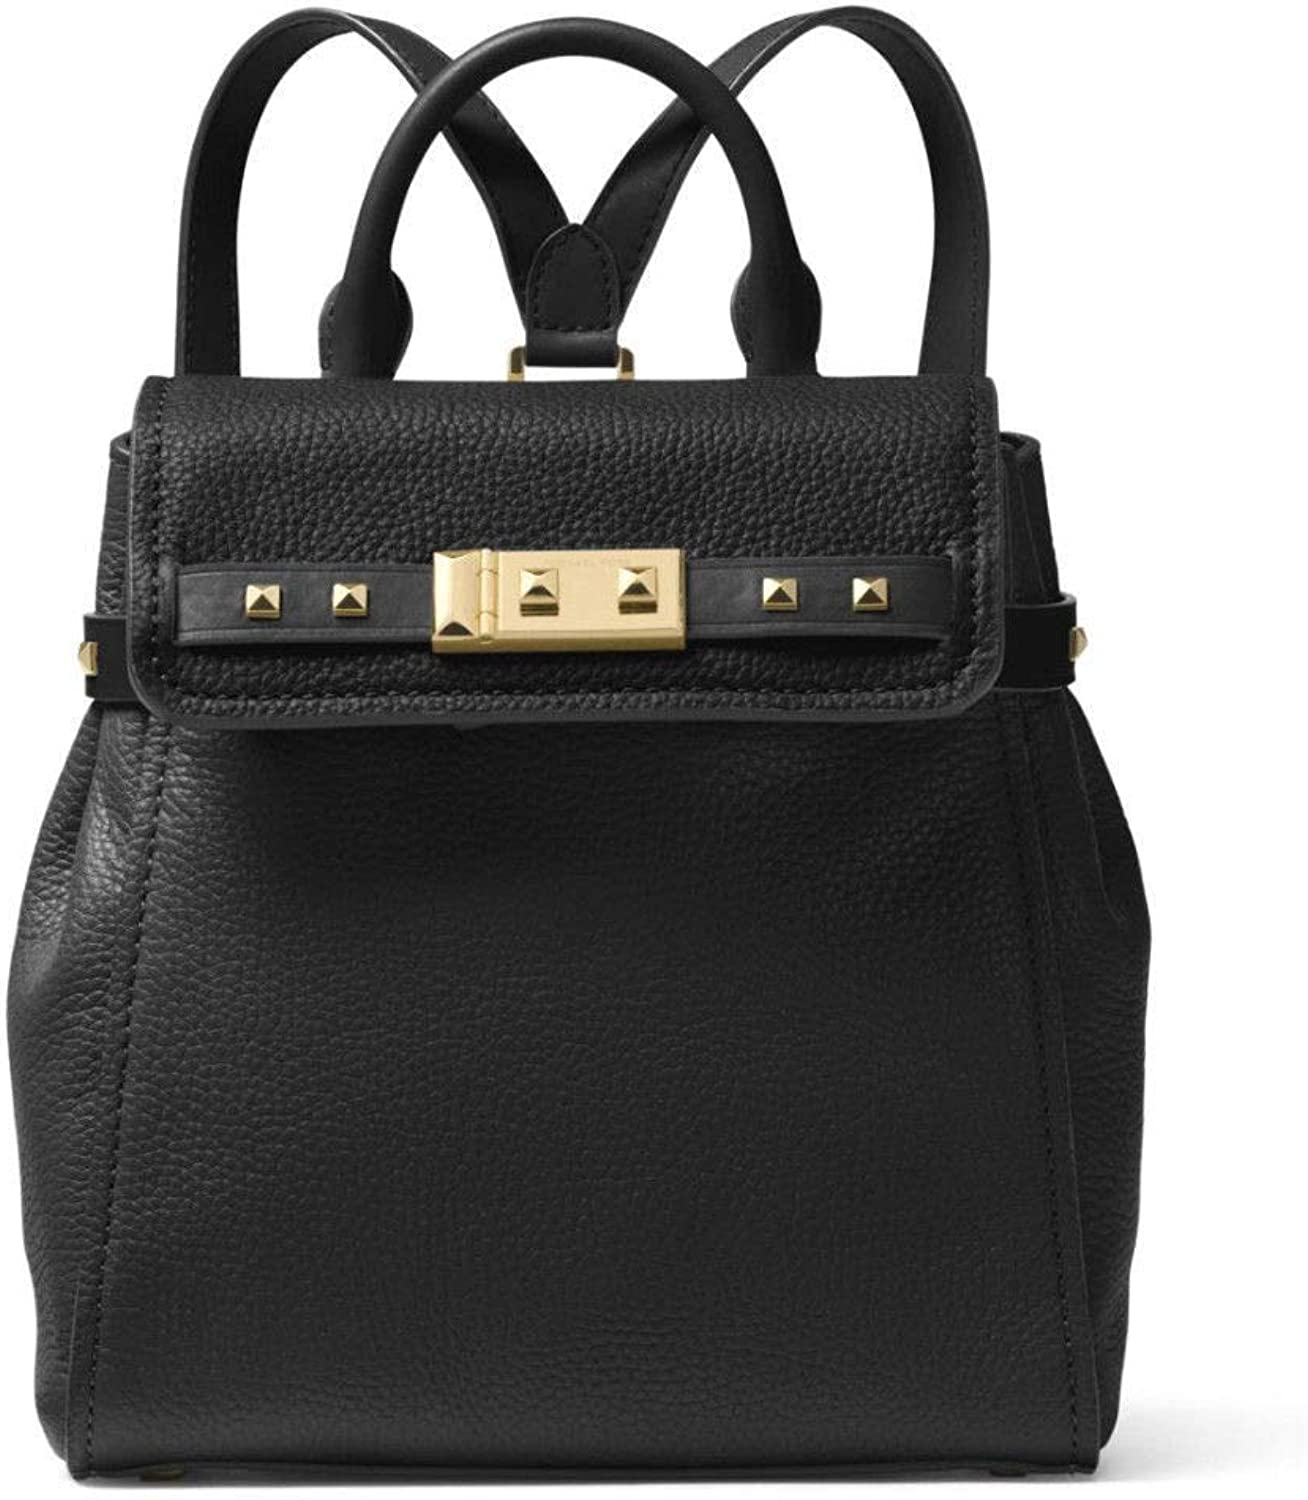 Michael Kors Addison Studded Small Pebbled Leather Backpack Purse